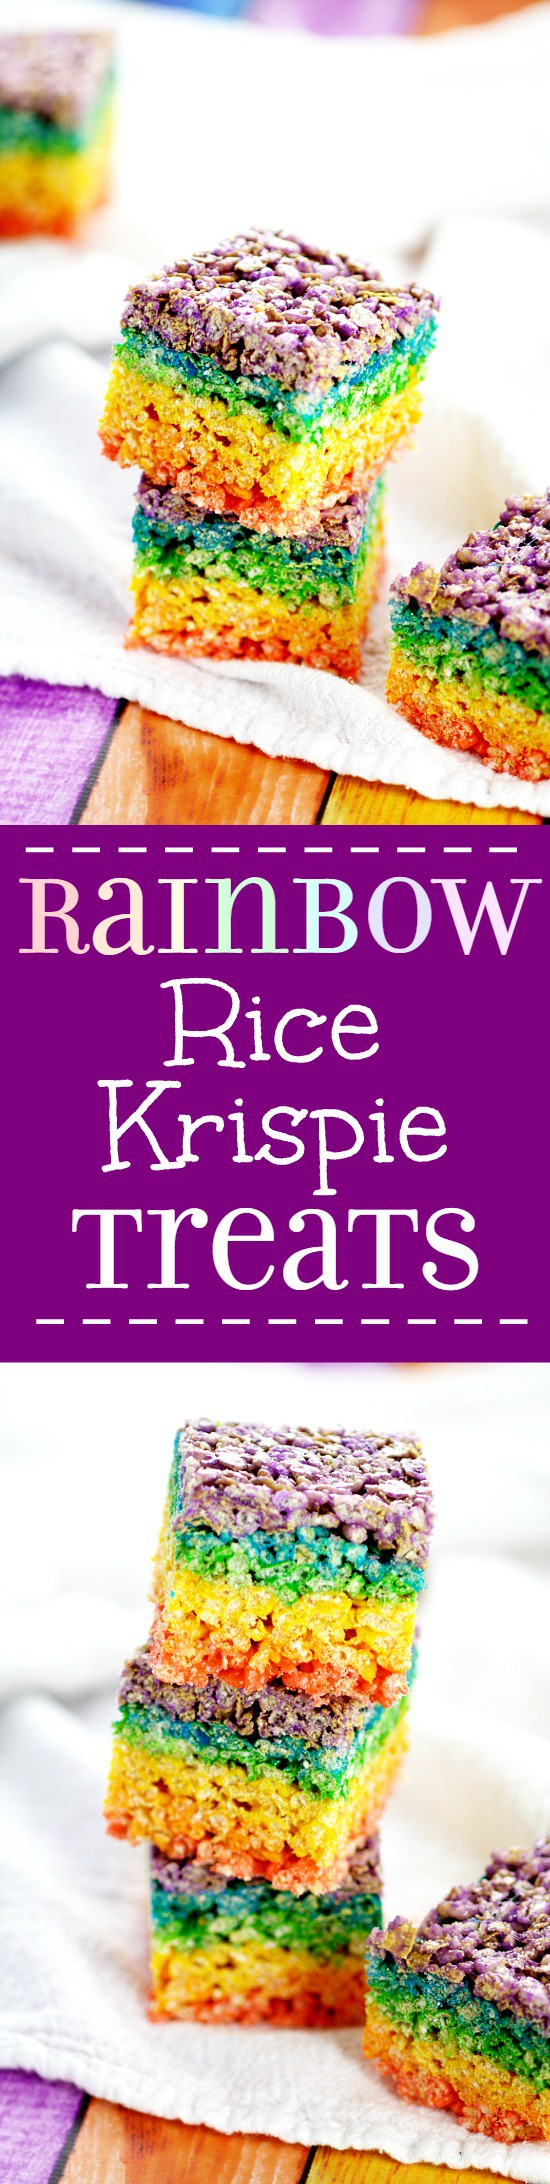 Rainbow Rice Krispie Treats recipe. Easy, no bake Rainbow Rice Krispie Treats make a pretty and festive treat for St Patrick's Day, or even just for fun, that everyone will love! What an adorable dessert recipe for St Patrick's Day or even a rainbow birthday party!